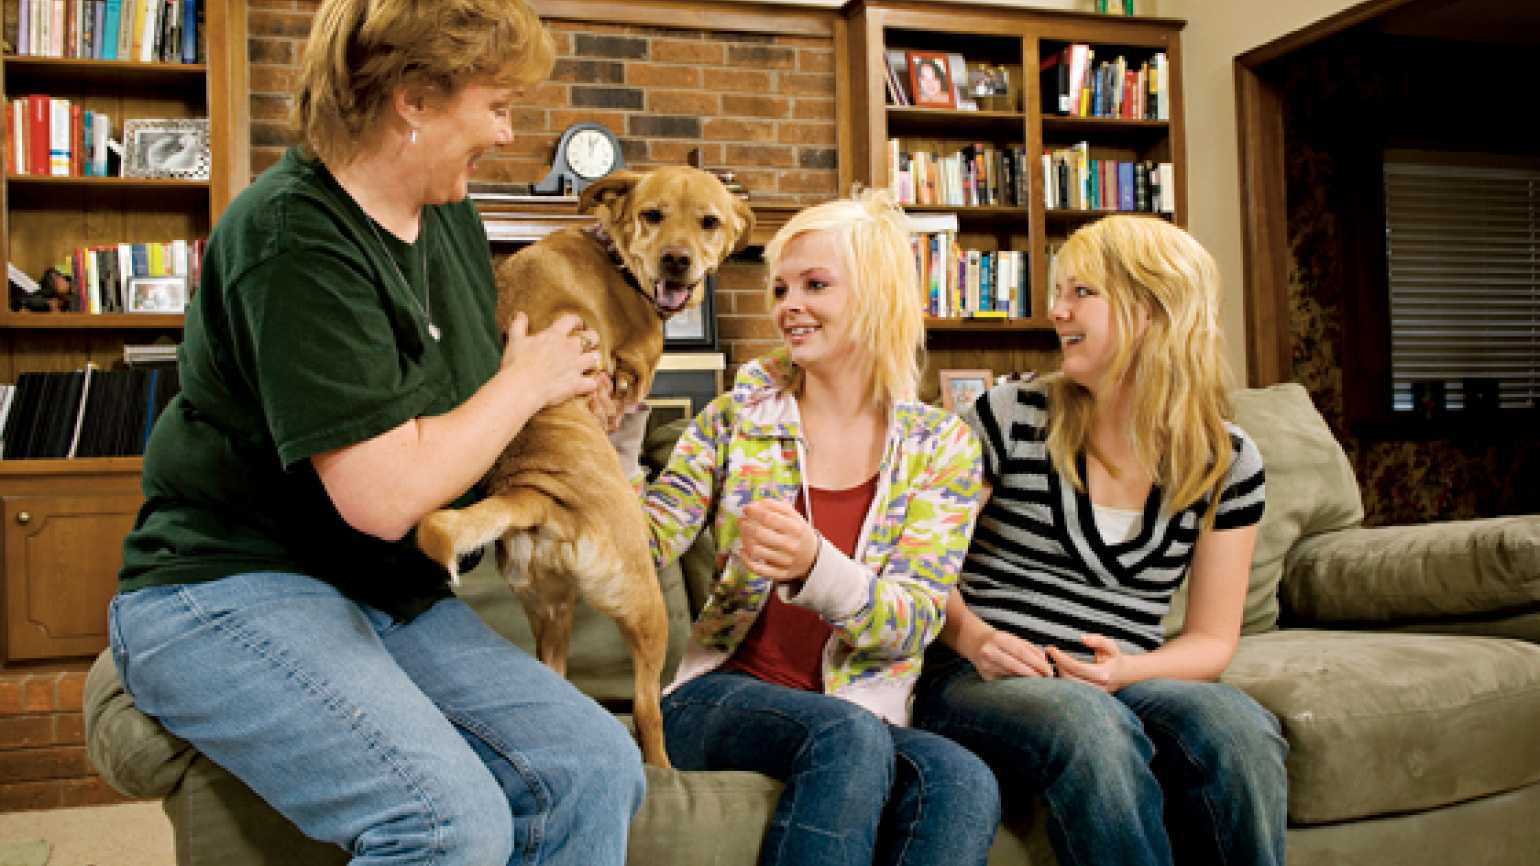 Faith the dog with her family